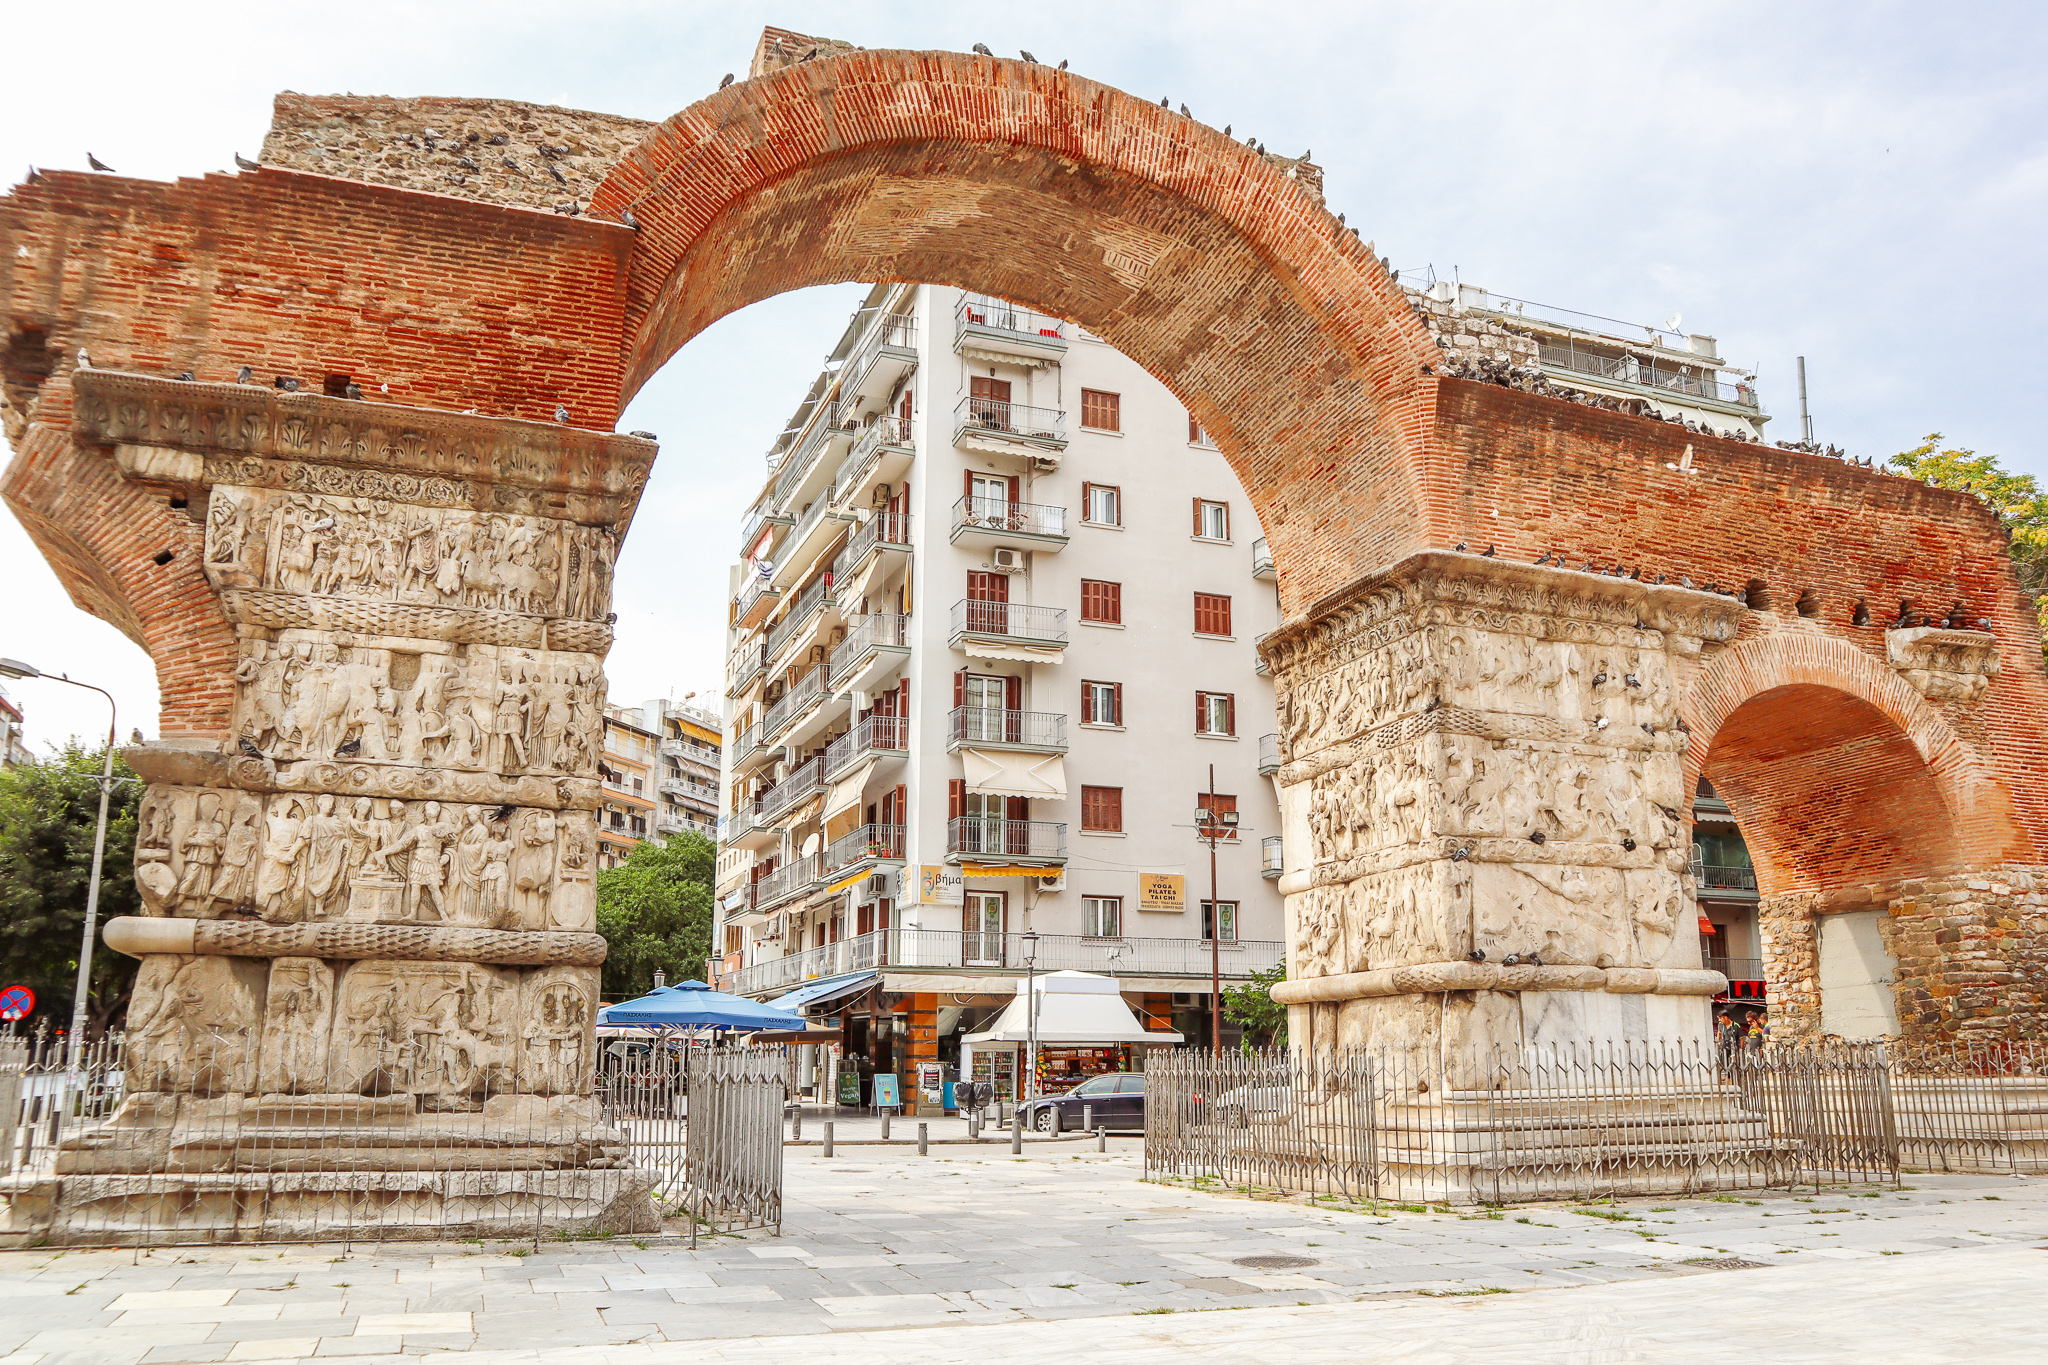 We stumbled upon the Arch of Galerius while walking around Thessaloniki